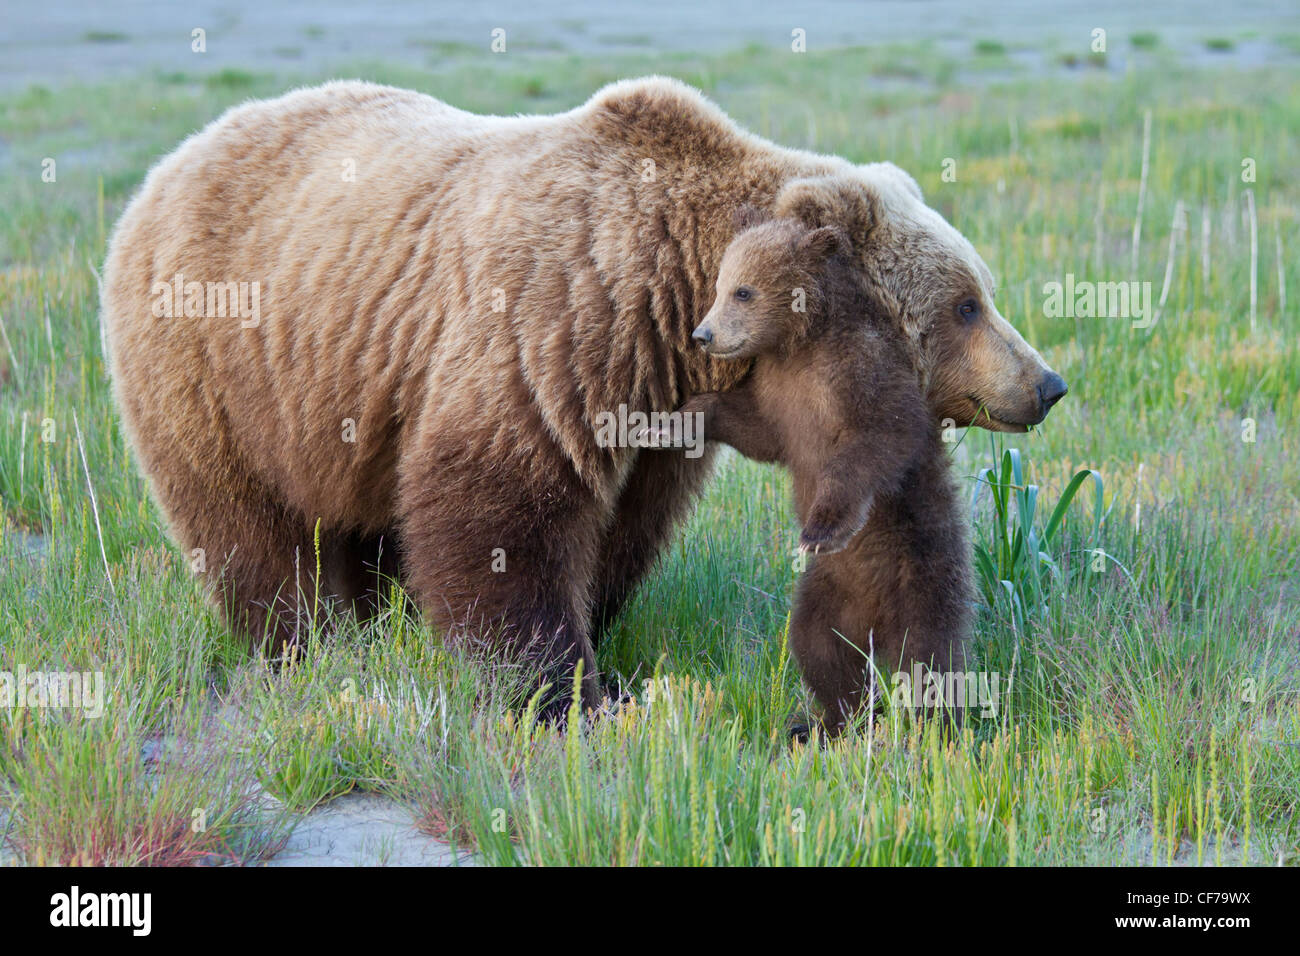 Alaskan brown bear sow with cub during summer - Stock Image